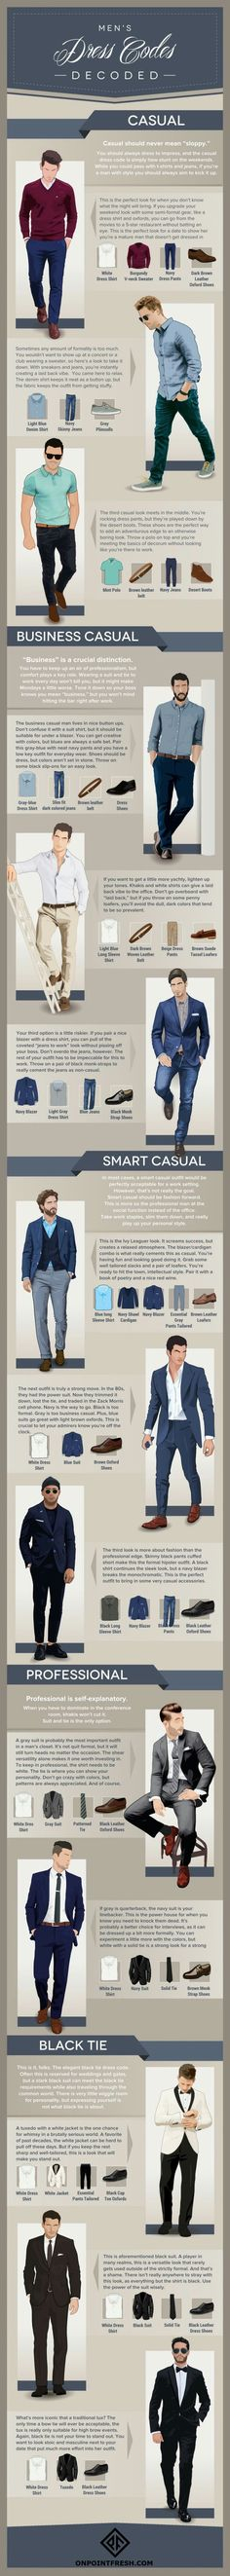 Definitive yet simple guide on getting dressed as a Gentleman